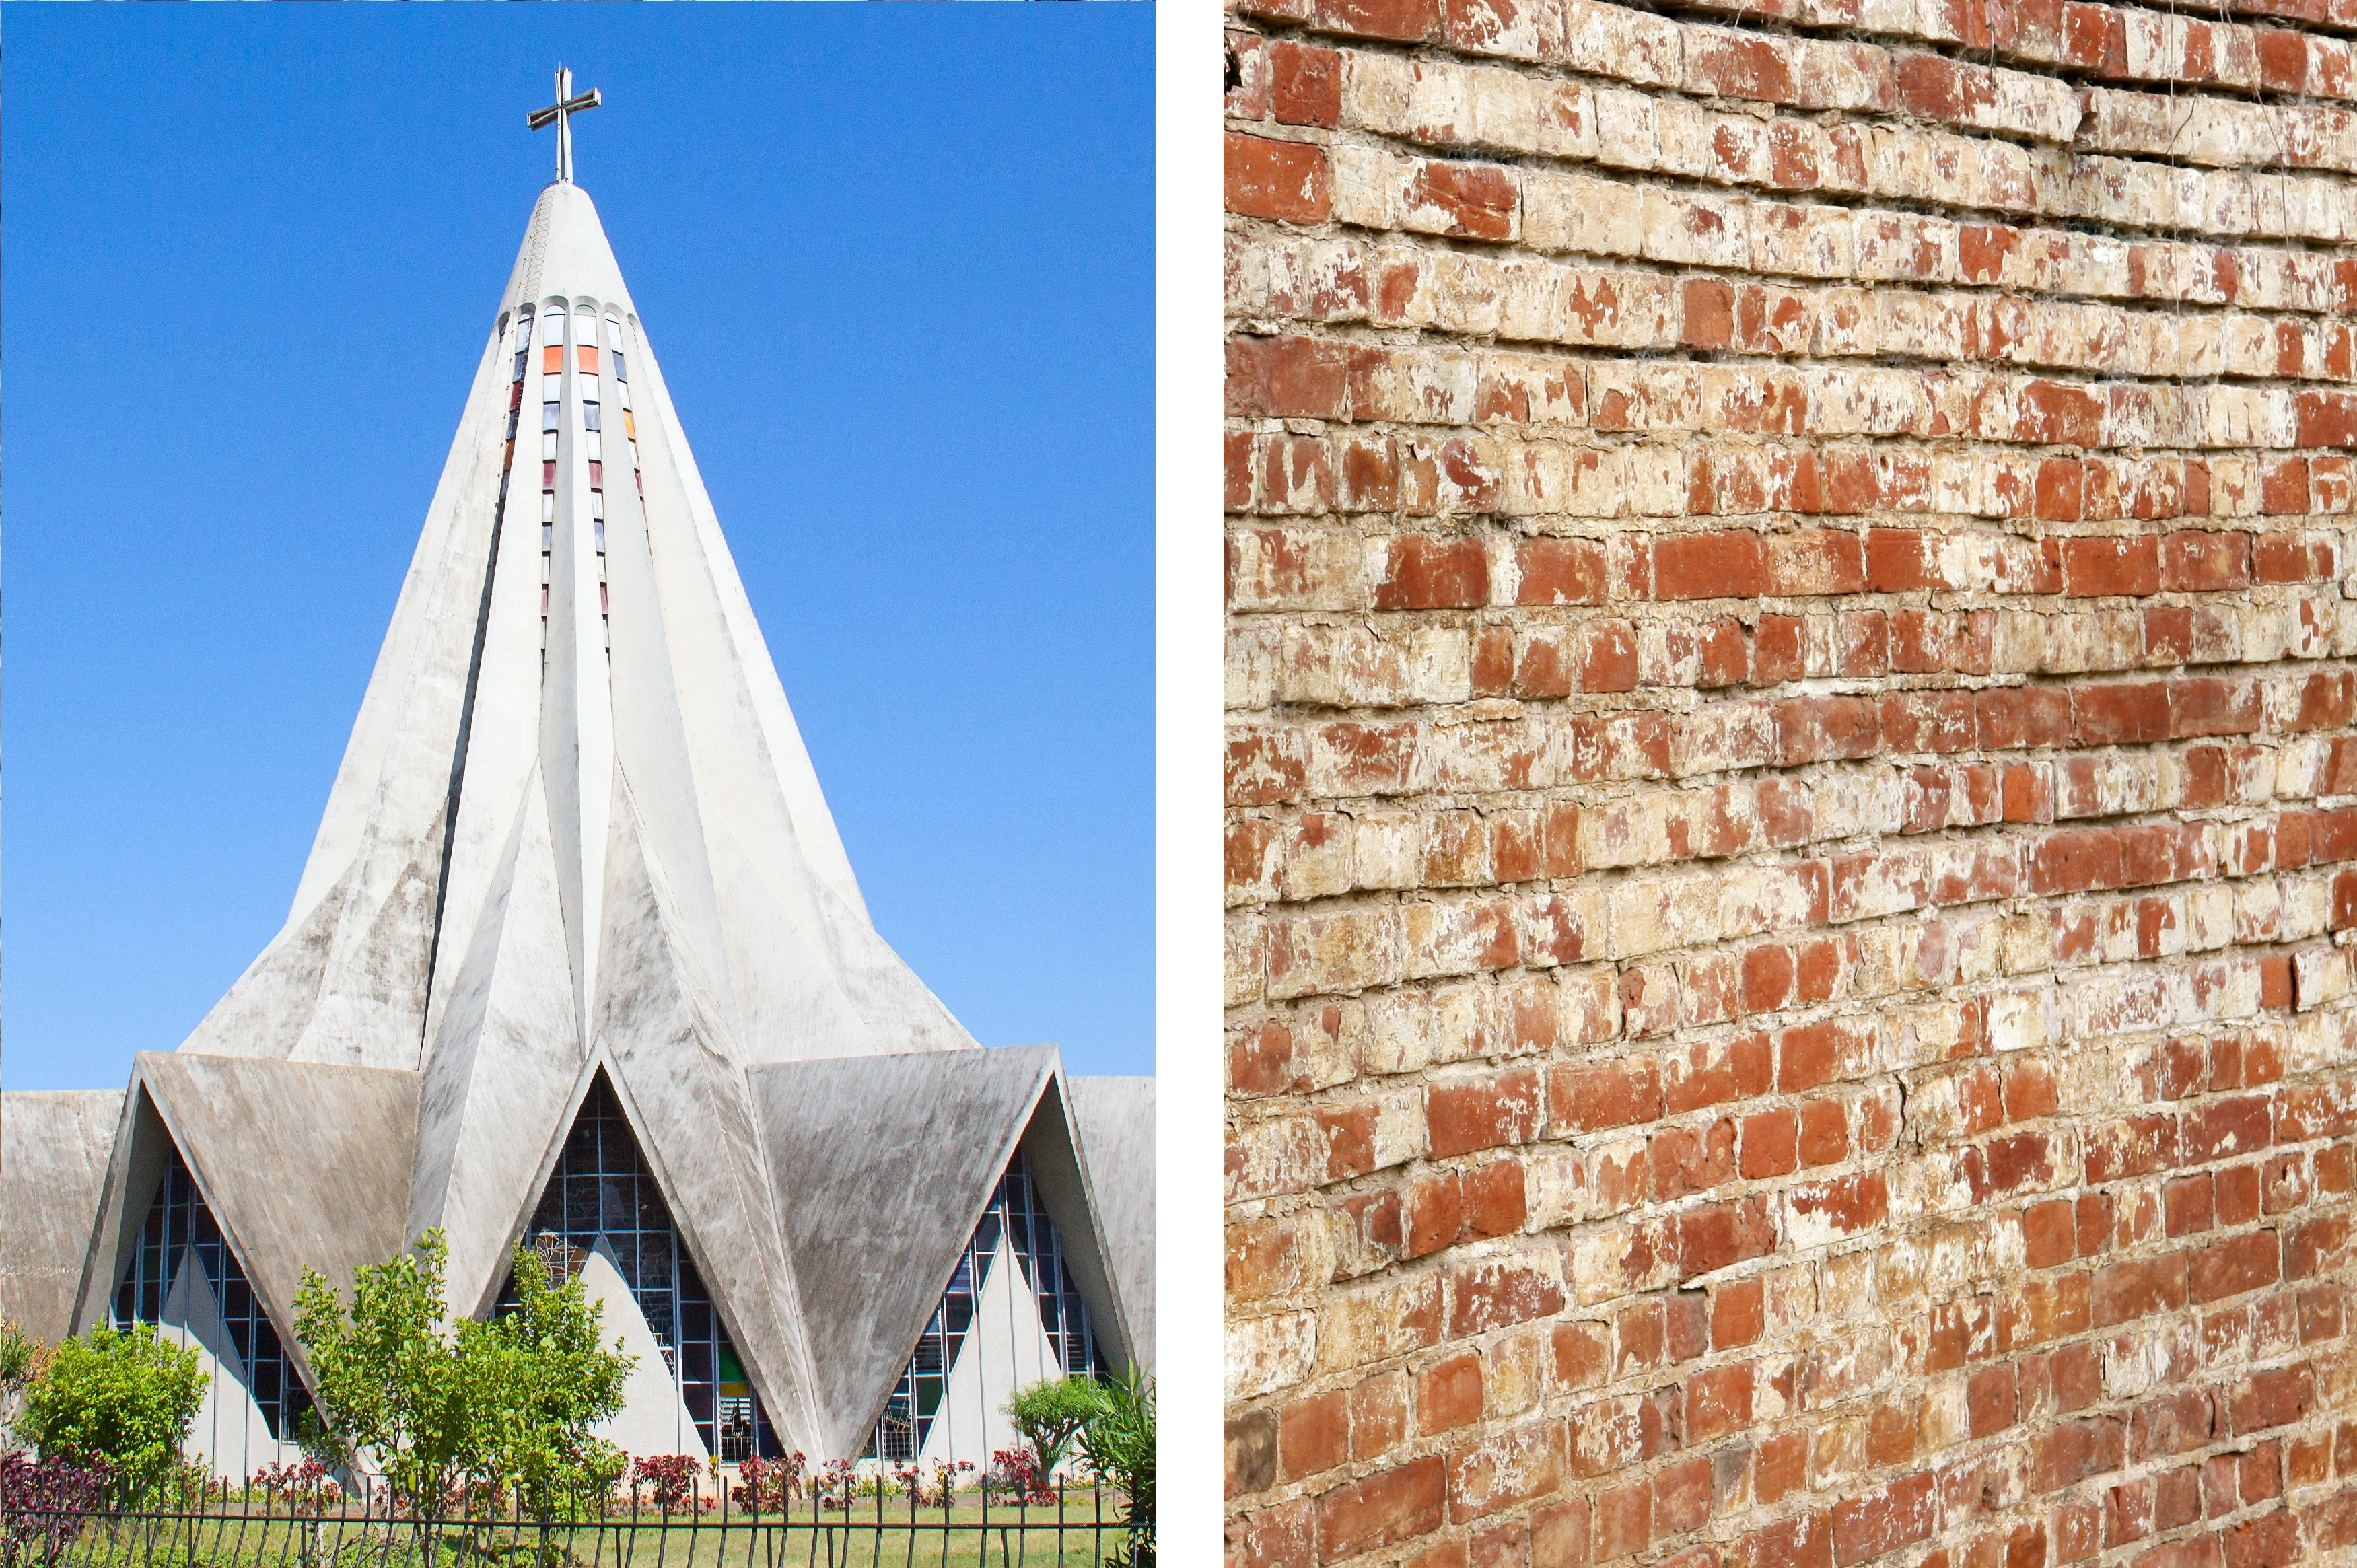 A cathedral and a brick wall